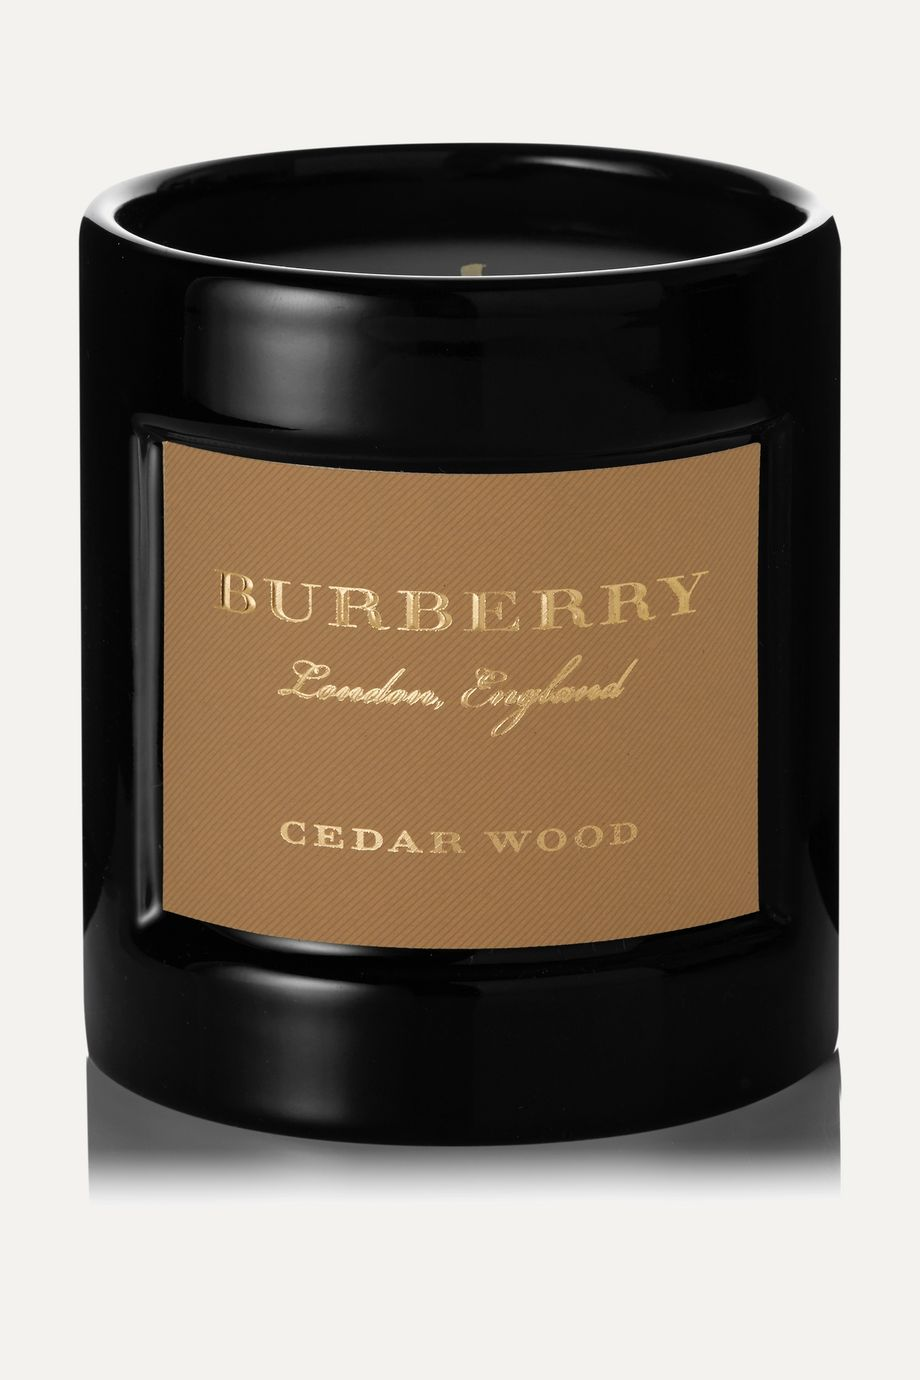 Burberry Beauty Cedarwood scented candle, 240g